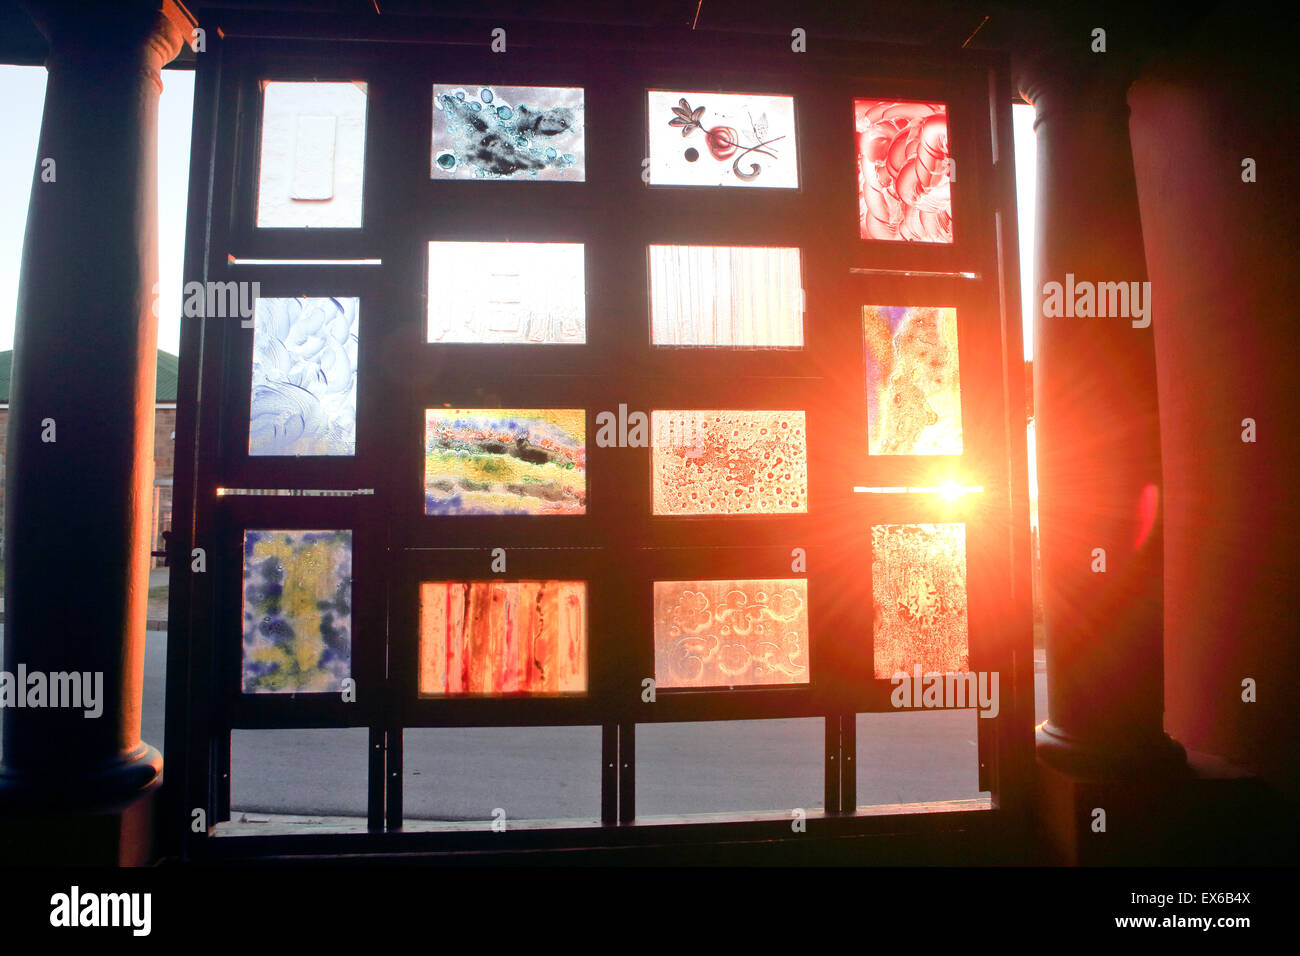 Ambient sunset light passing through stain glass windows - Stock Image